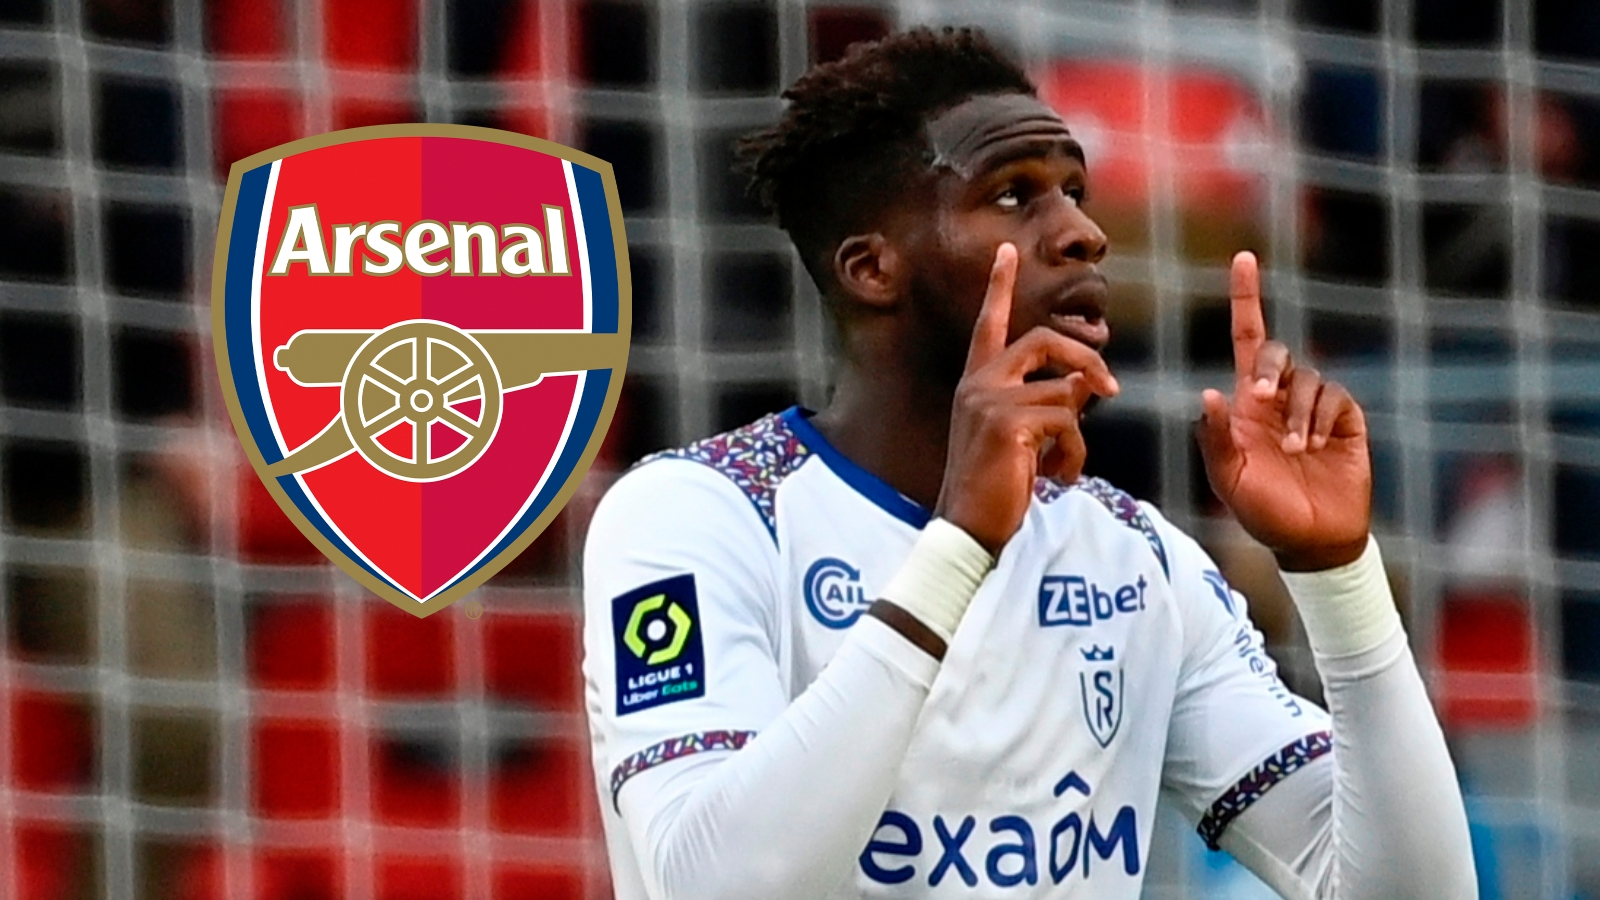 Transfer news and rumours LIVE: Arsenal join race for Dia